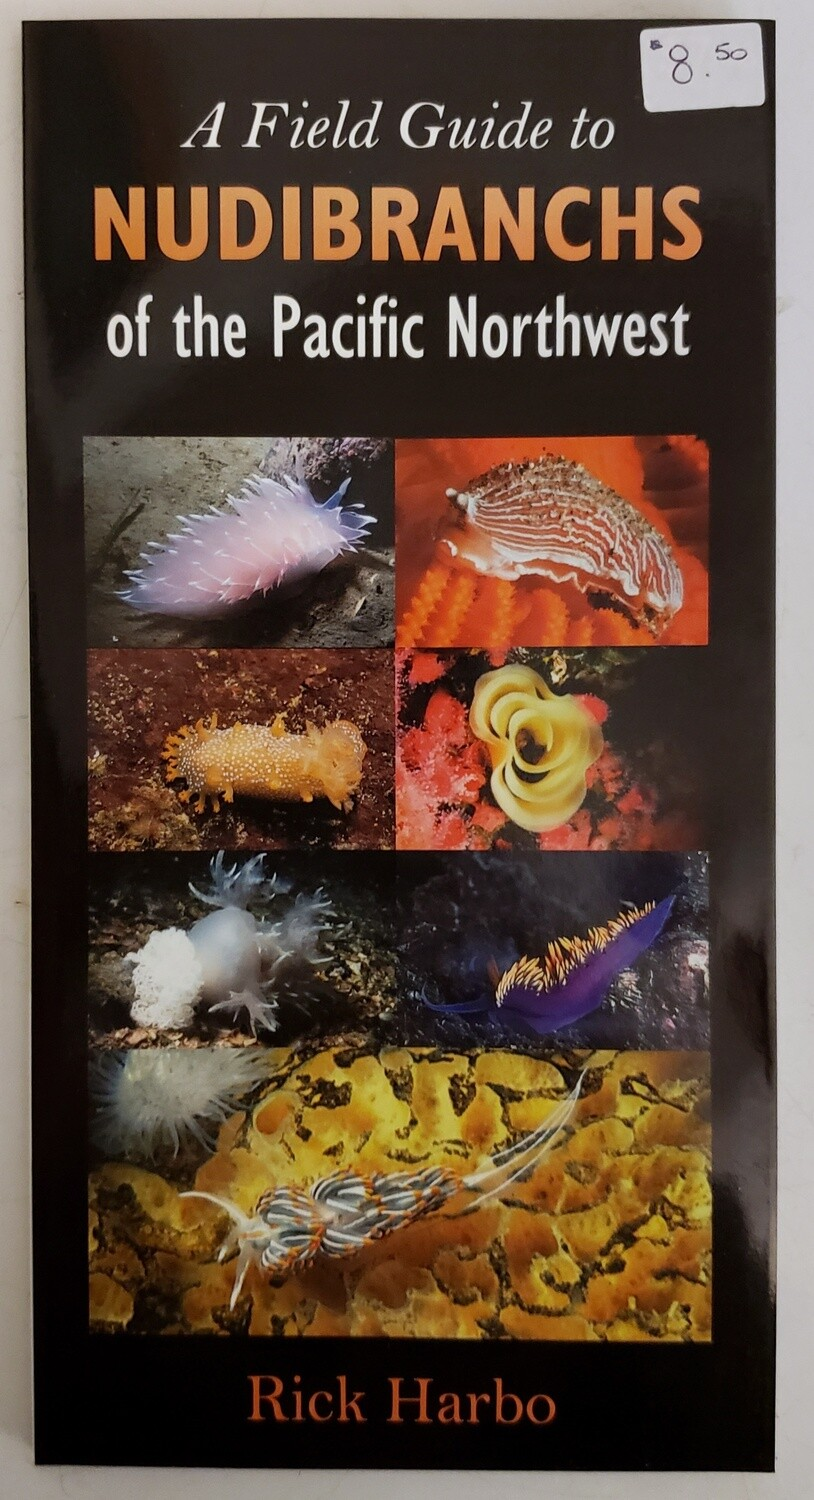 A Field Guide to Nudibranchs of the Pacific Northwest Brochure